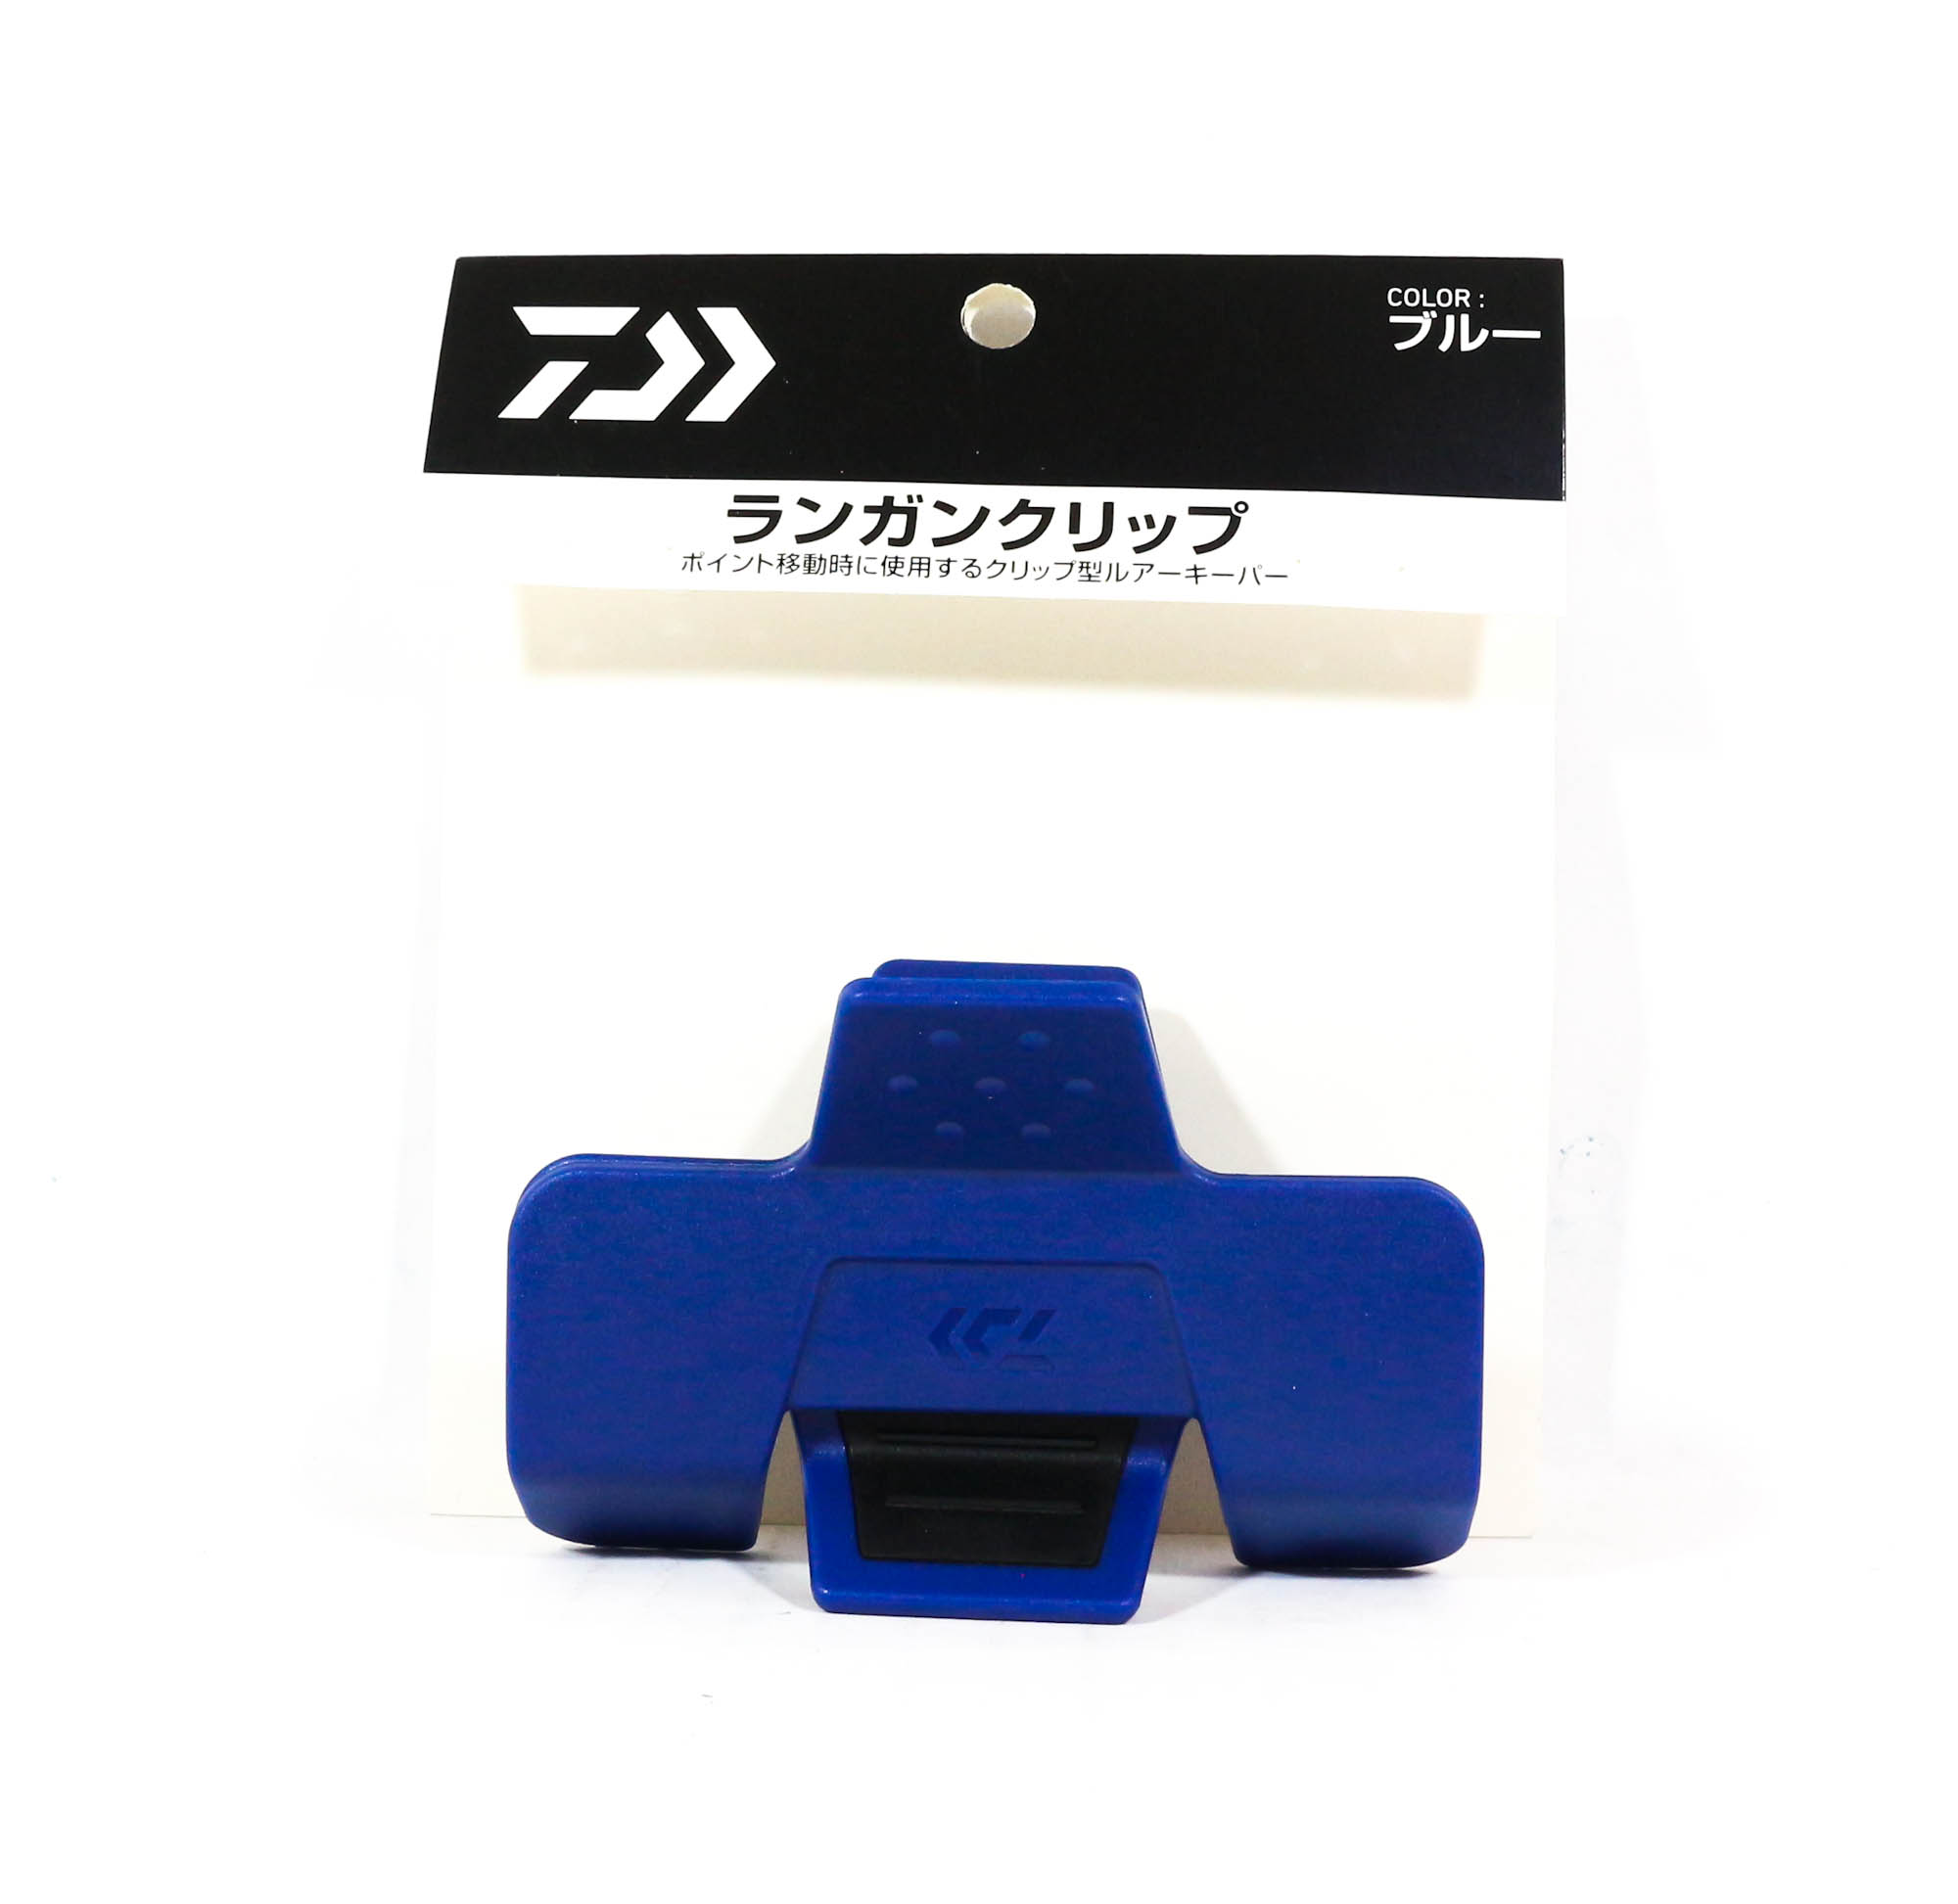 Daiwa Rungun Clip on Safety Lure Holder for Rod 93mm Blue (5645)